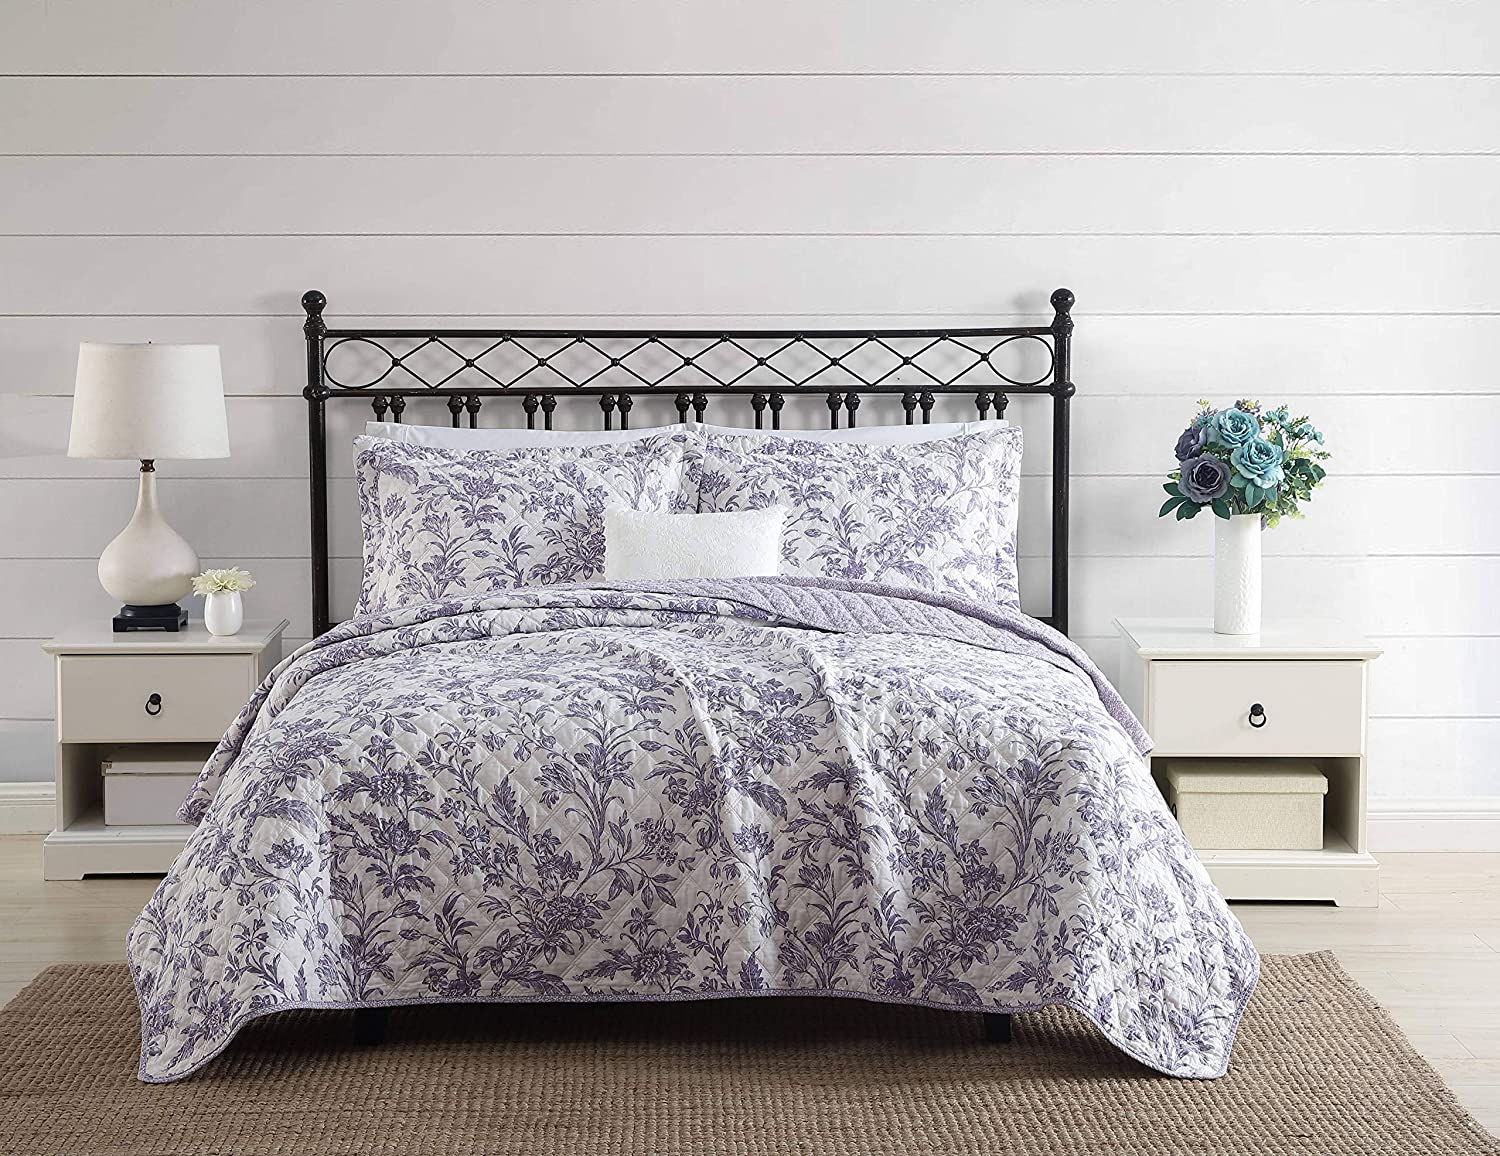 Laura Ashley Home | Delila Collection | Luxury Ultra Soft Cotton Comforter 3 Piece Set, Stylish Delicate Design for Home Décor, King, Purple